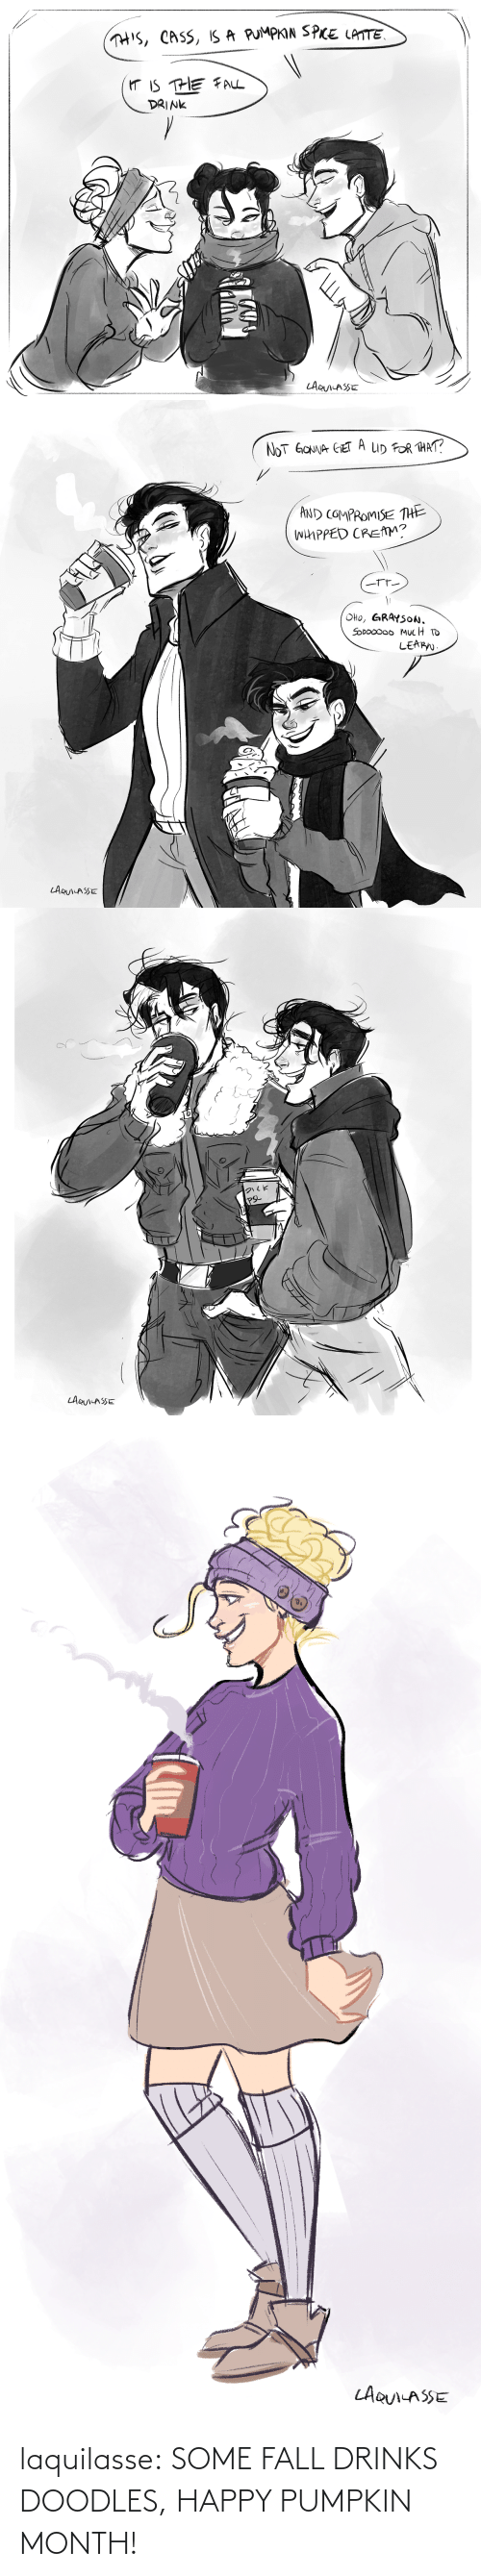 month: laquilasse:  SOME FALL DRINKS DOODLES, HAPPY PUMPKIN MONTH!